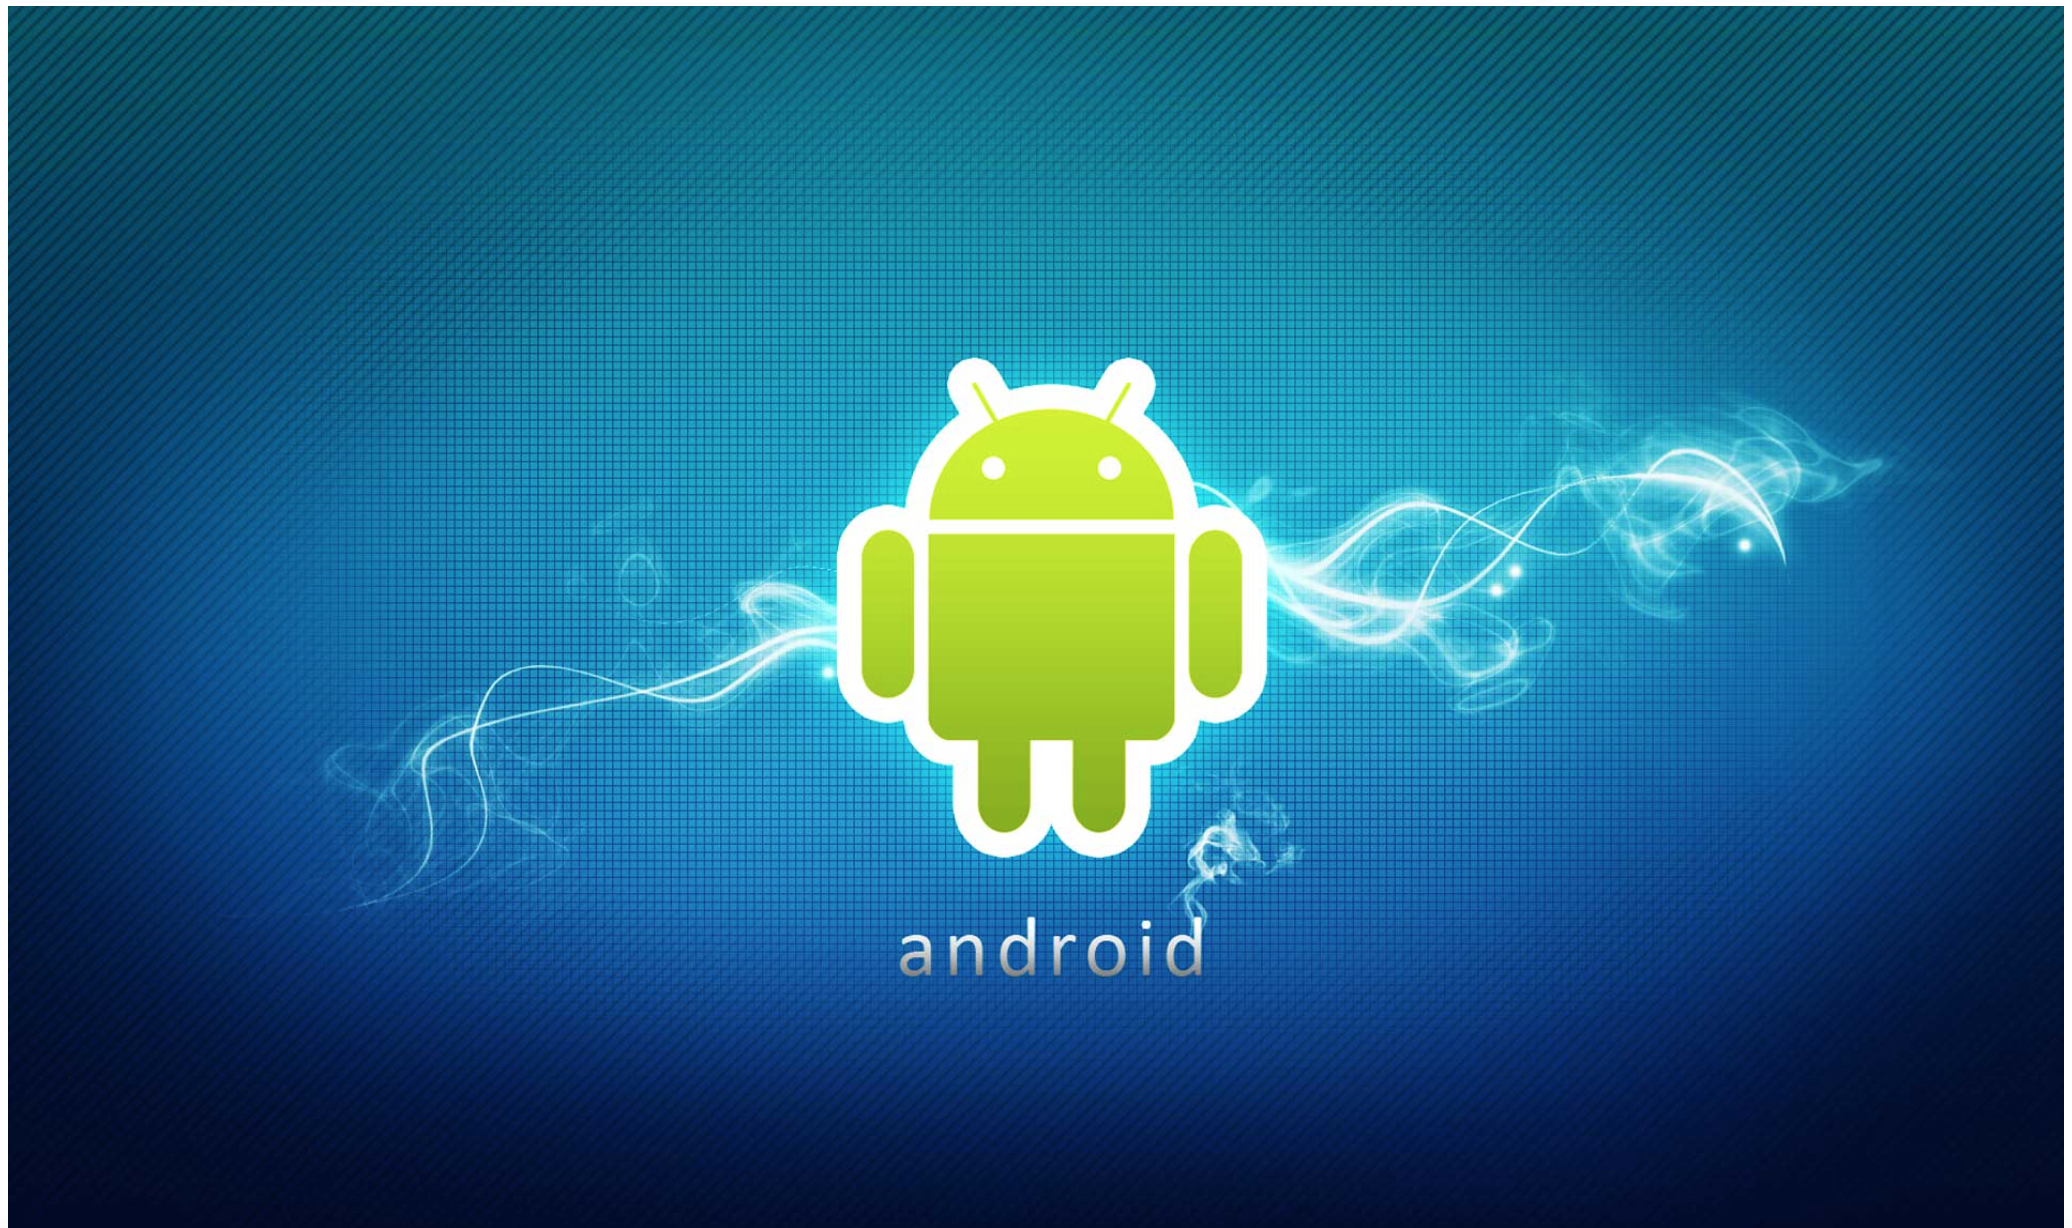 I will fix any issues or bugs in your Android app